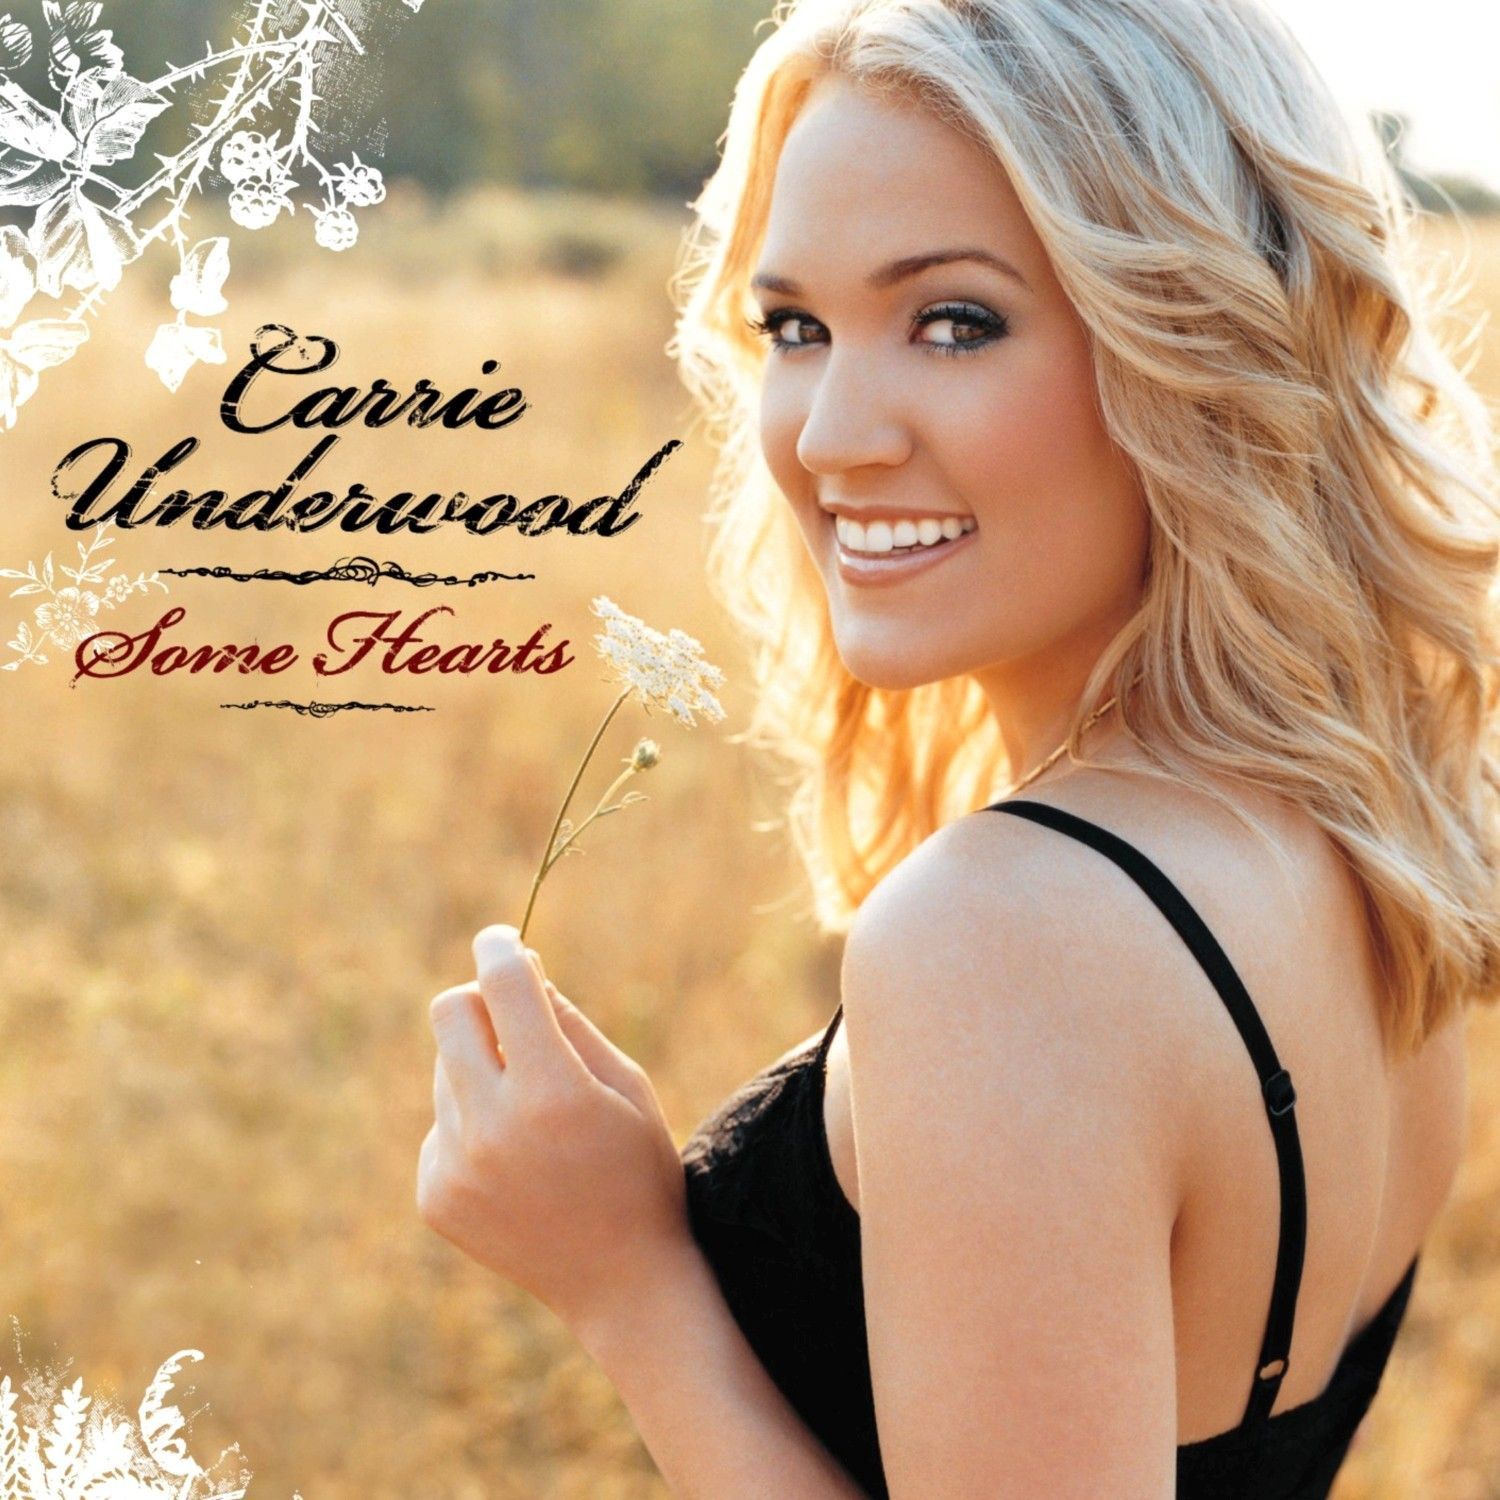 Carrie Underwood - Some Hearts album cover